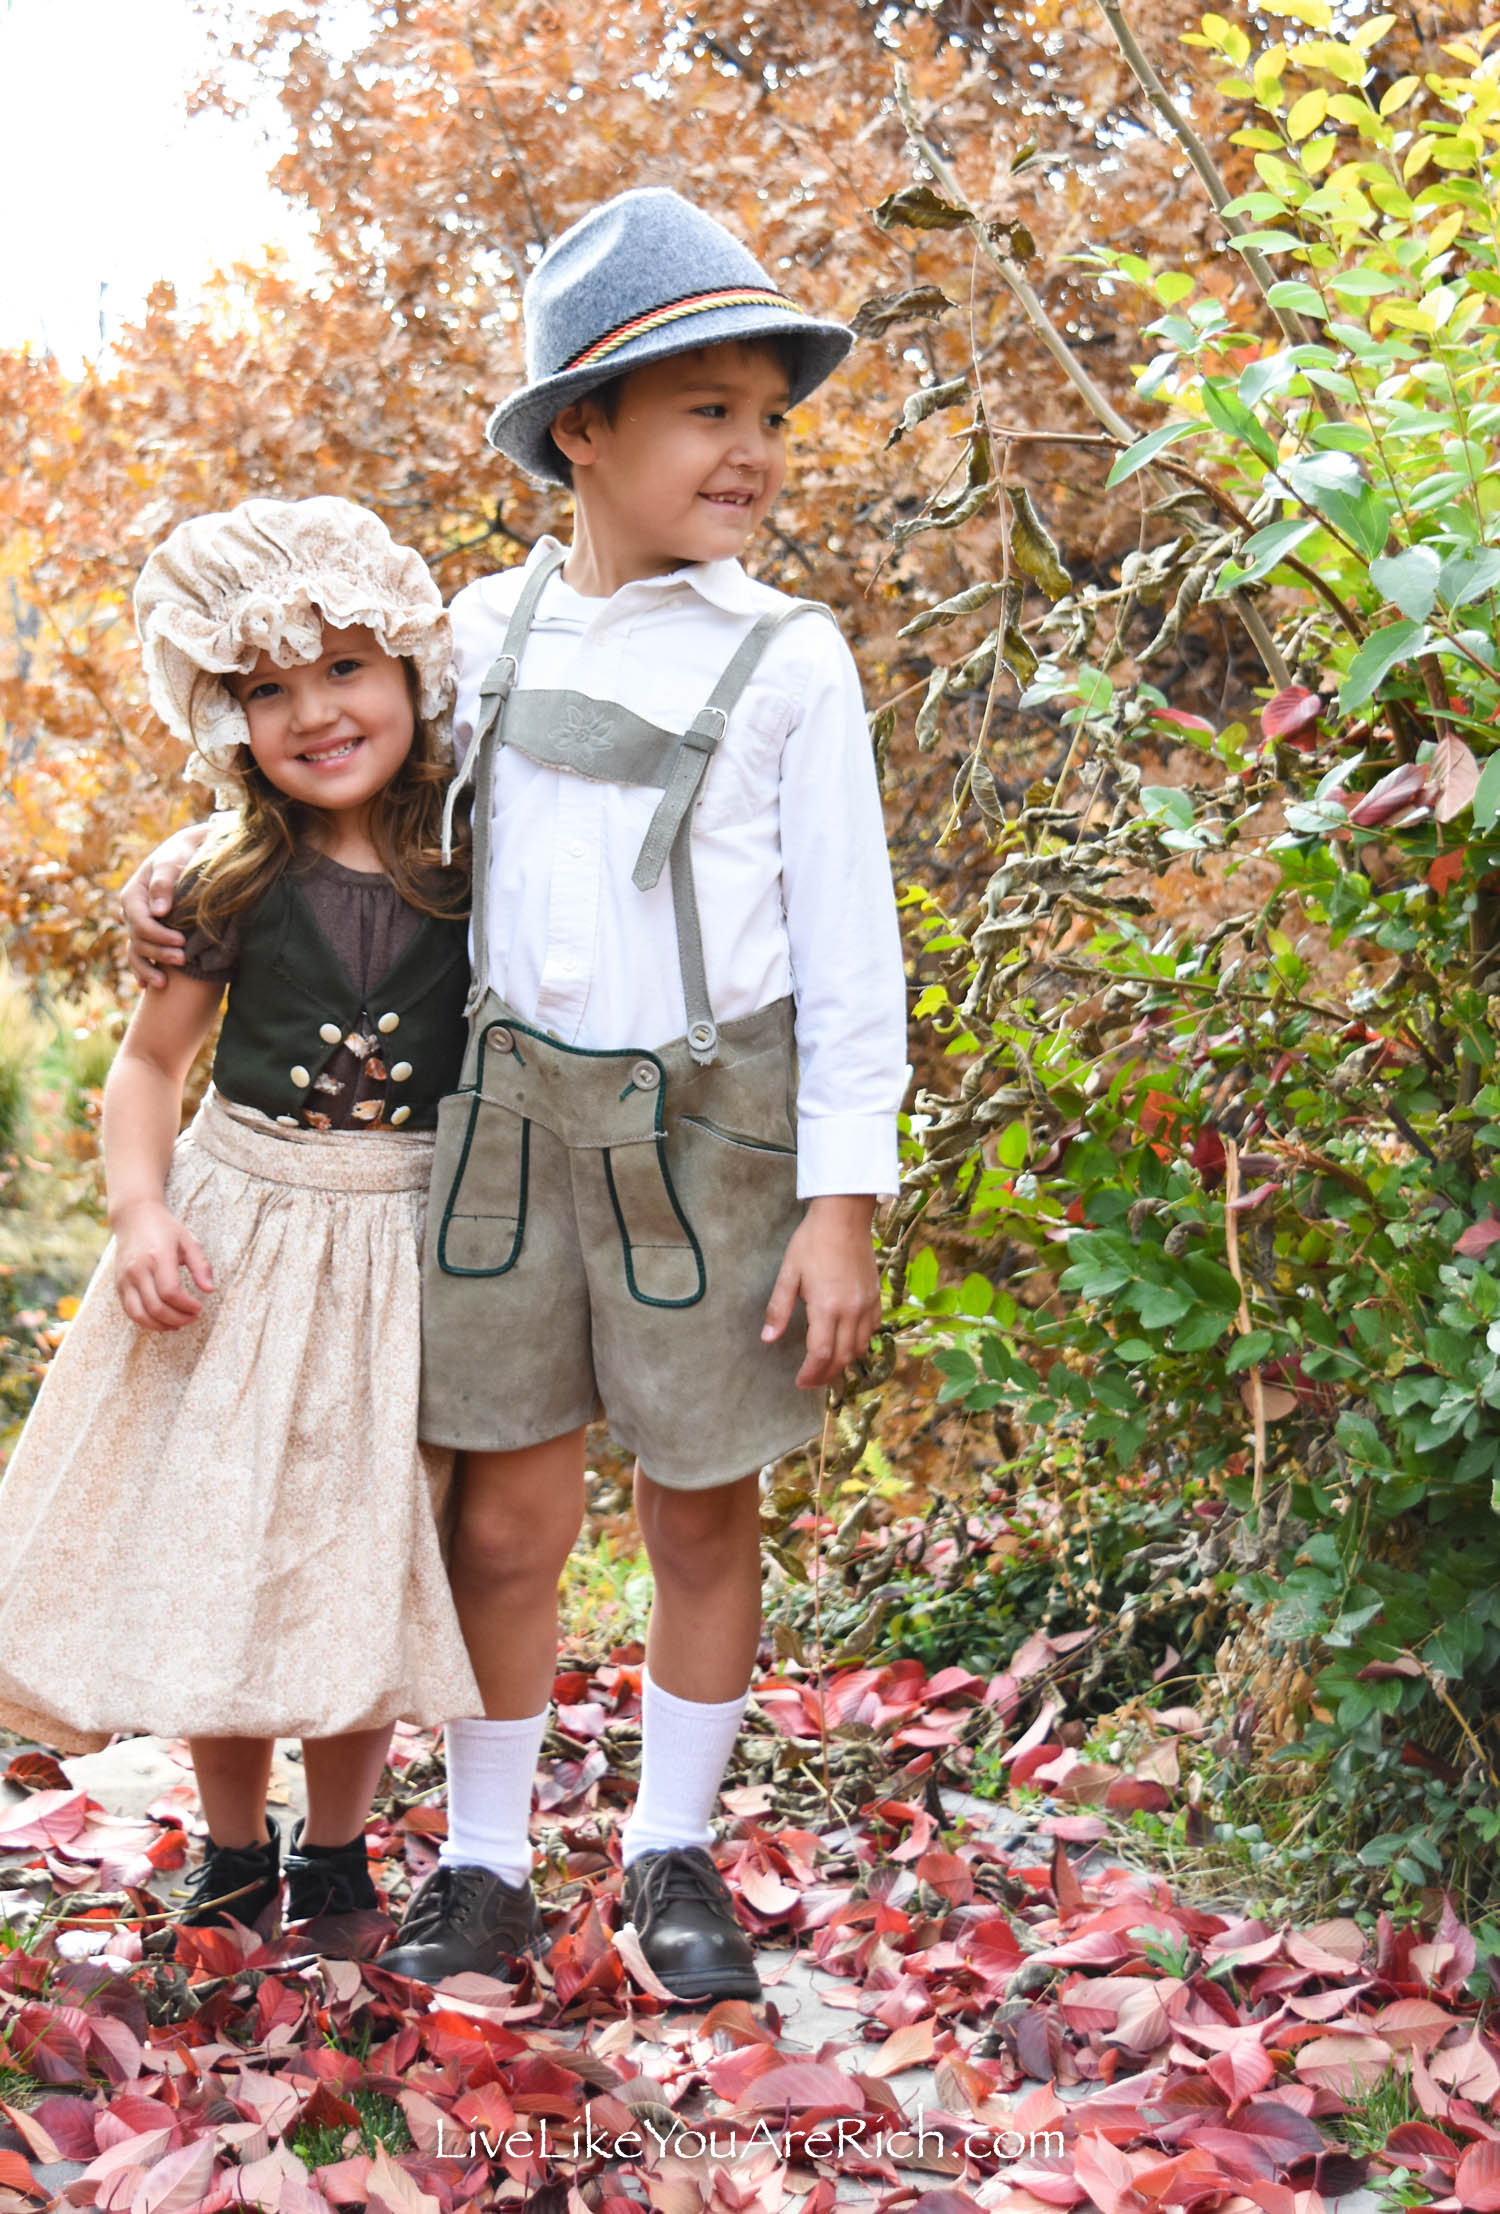 Hansel and Gretel Costumes—Grimm's Fairytales